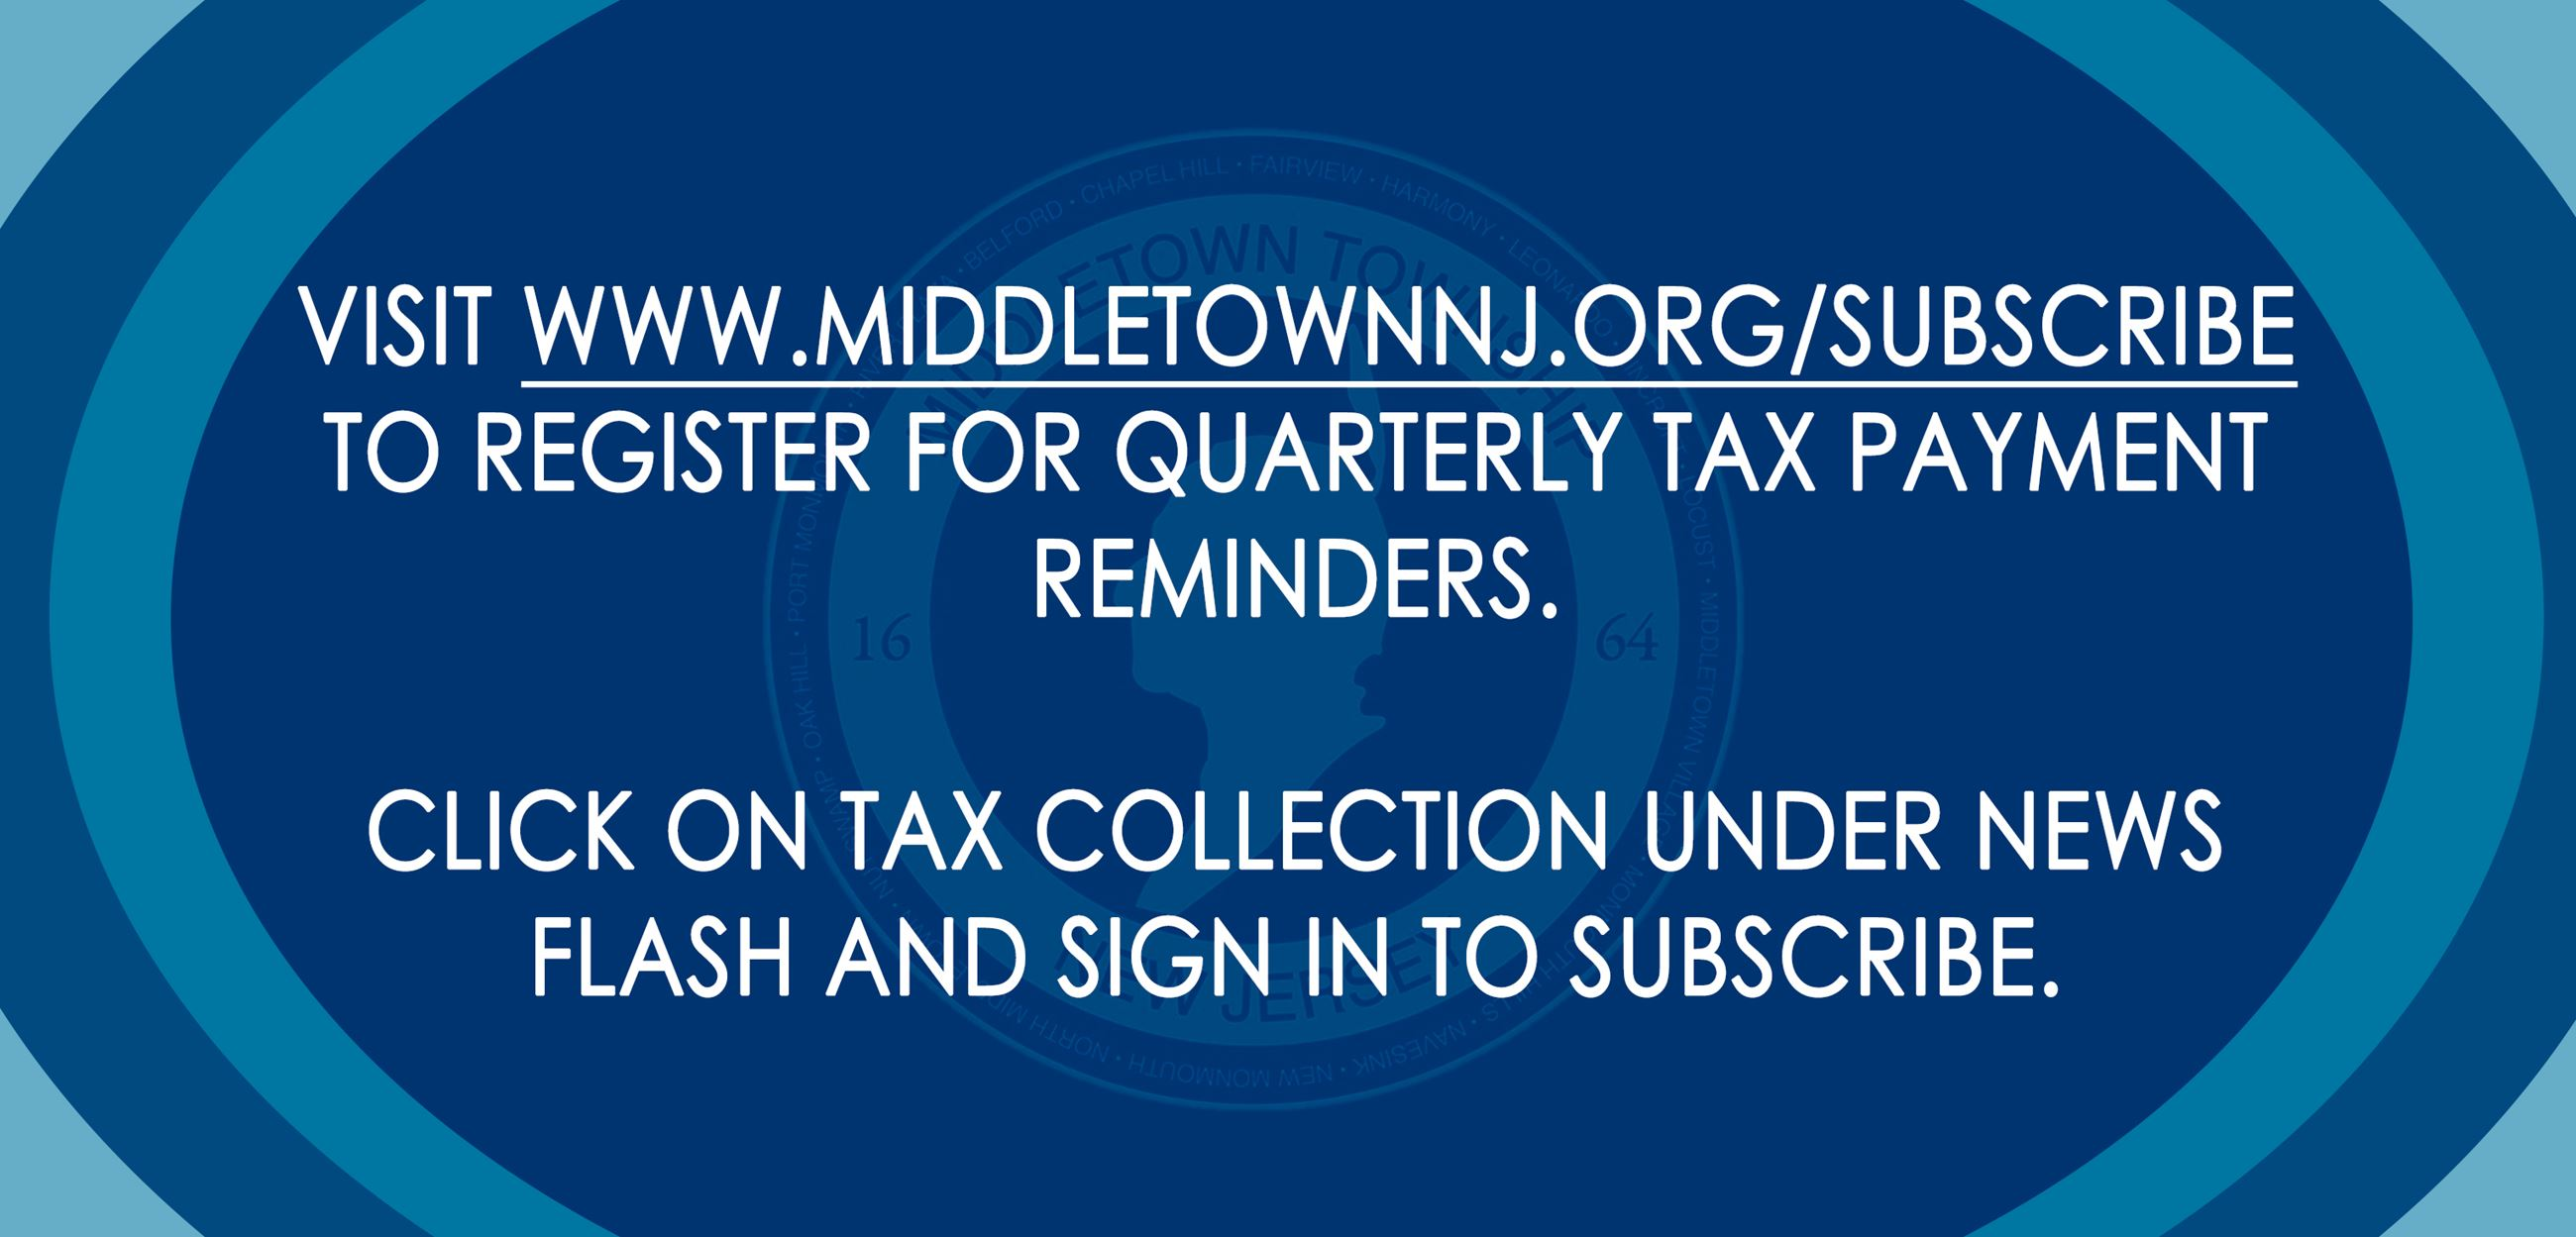 Quarterly Tax Payment Alerts